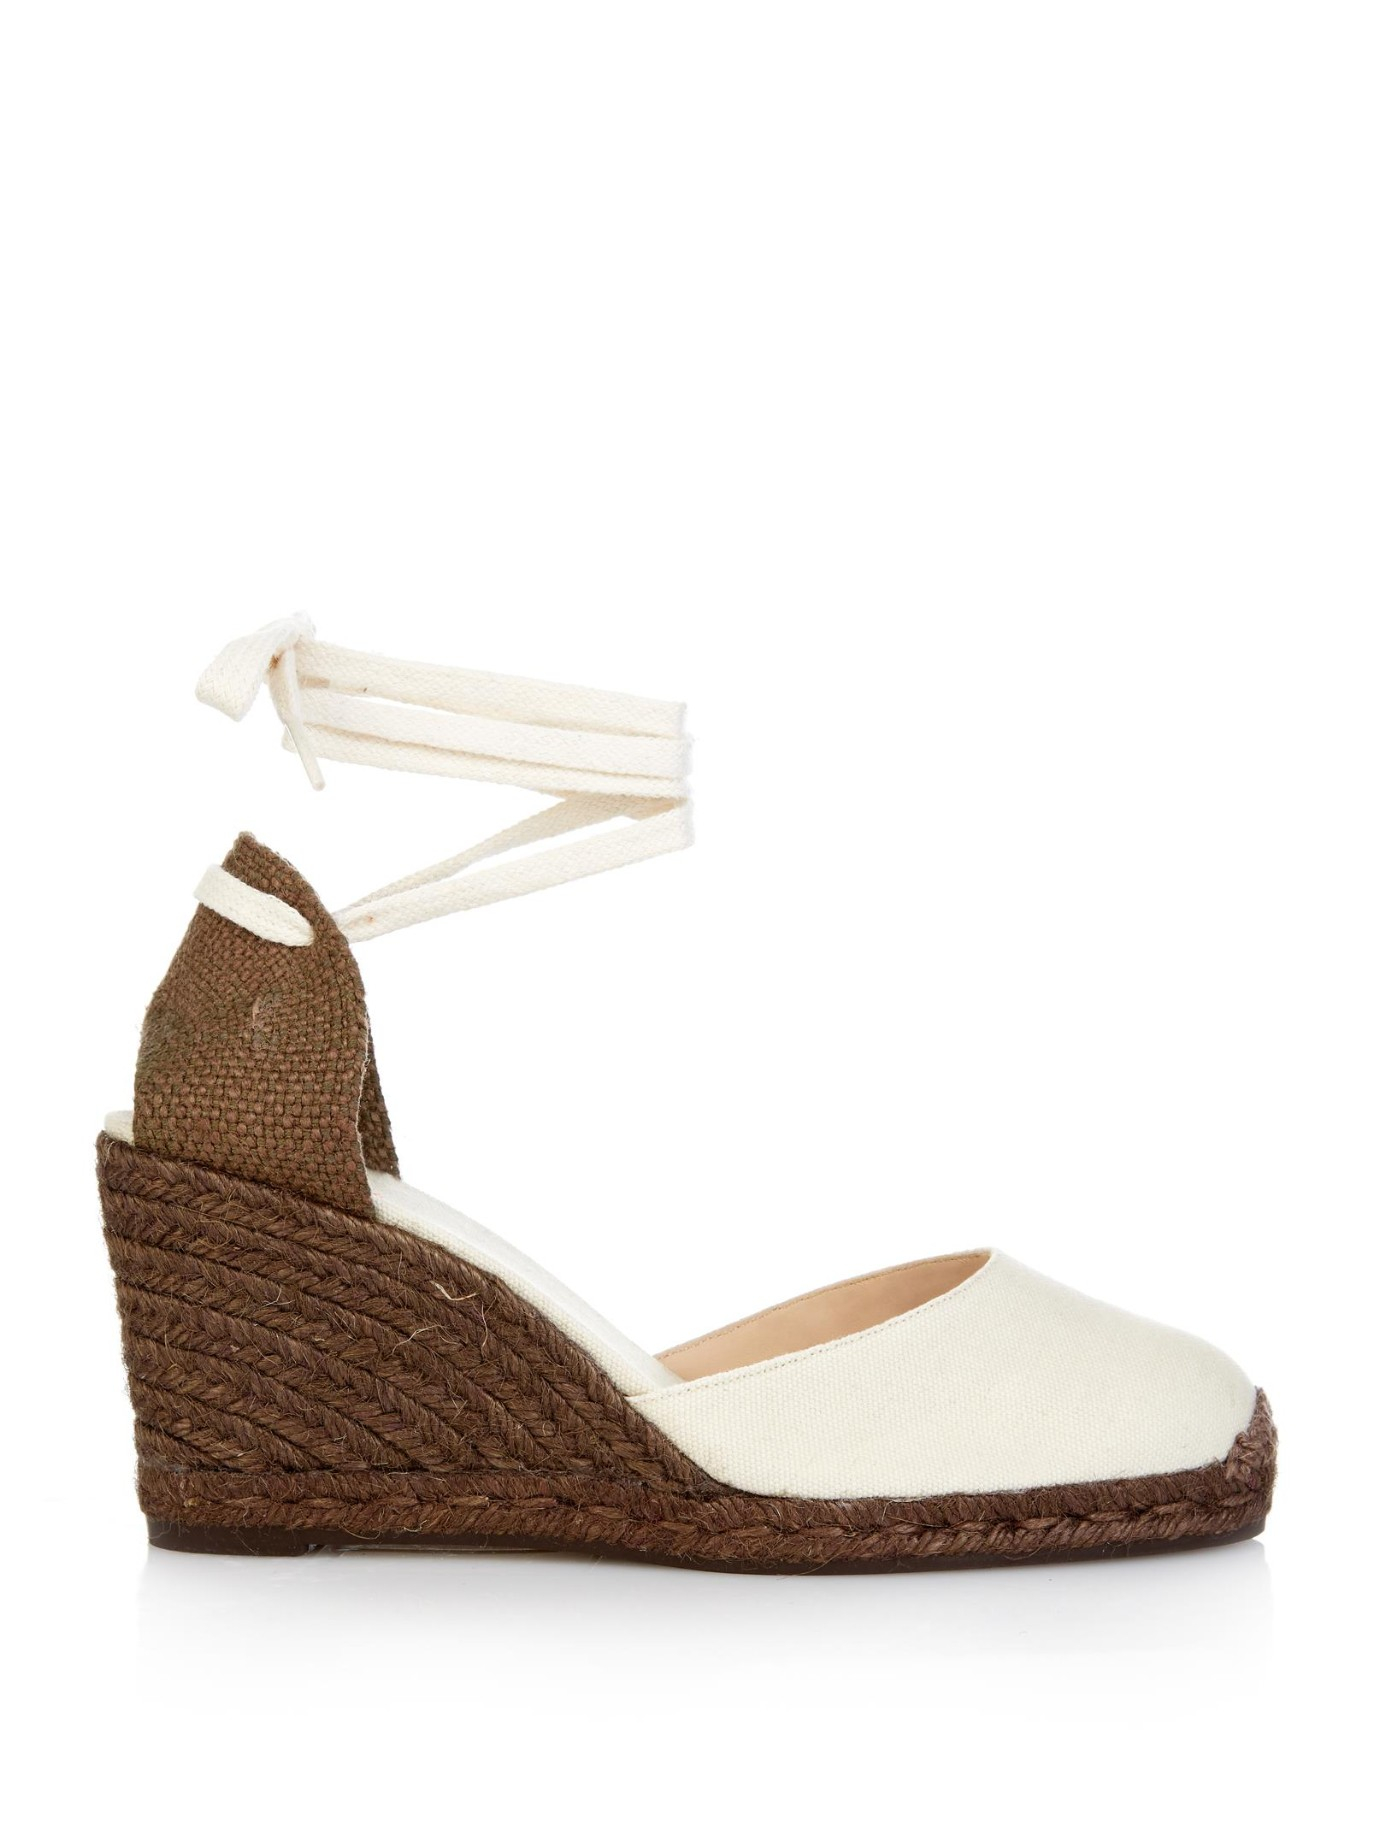 b658aa055e32 Lyst - Castaner Carina Espadrille Wedges in White